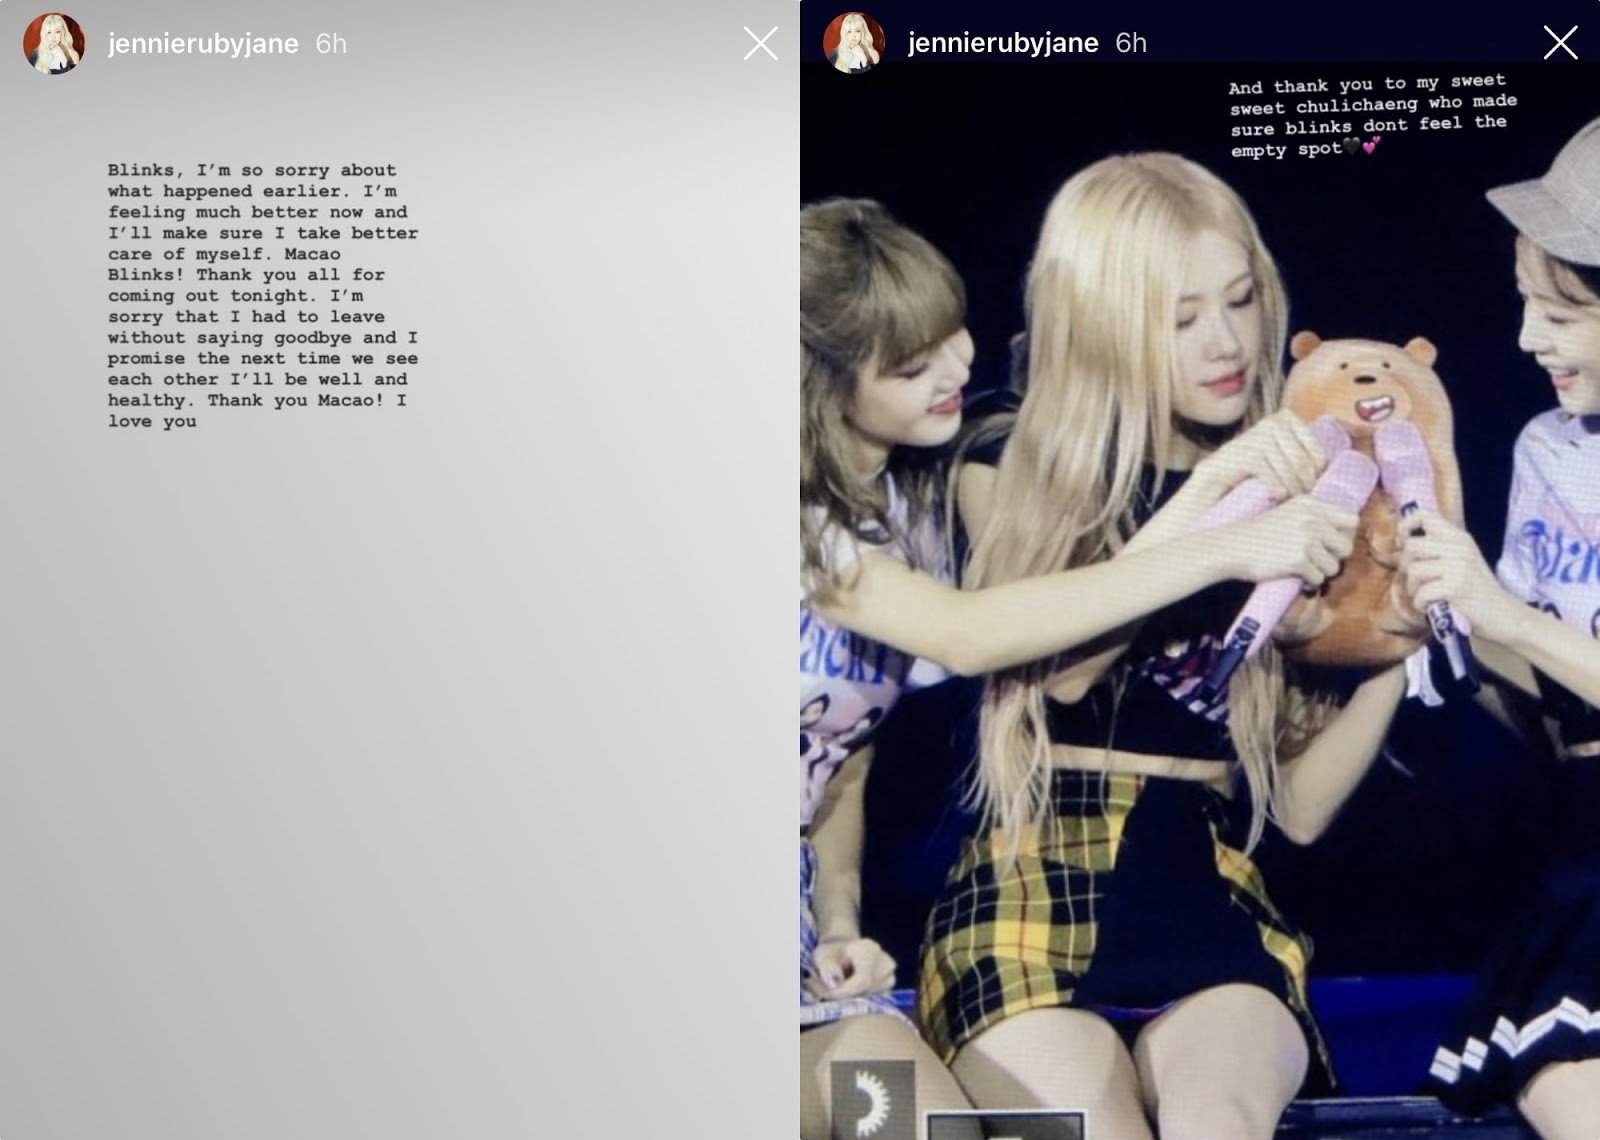 blackpink_jennie_sick story_